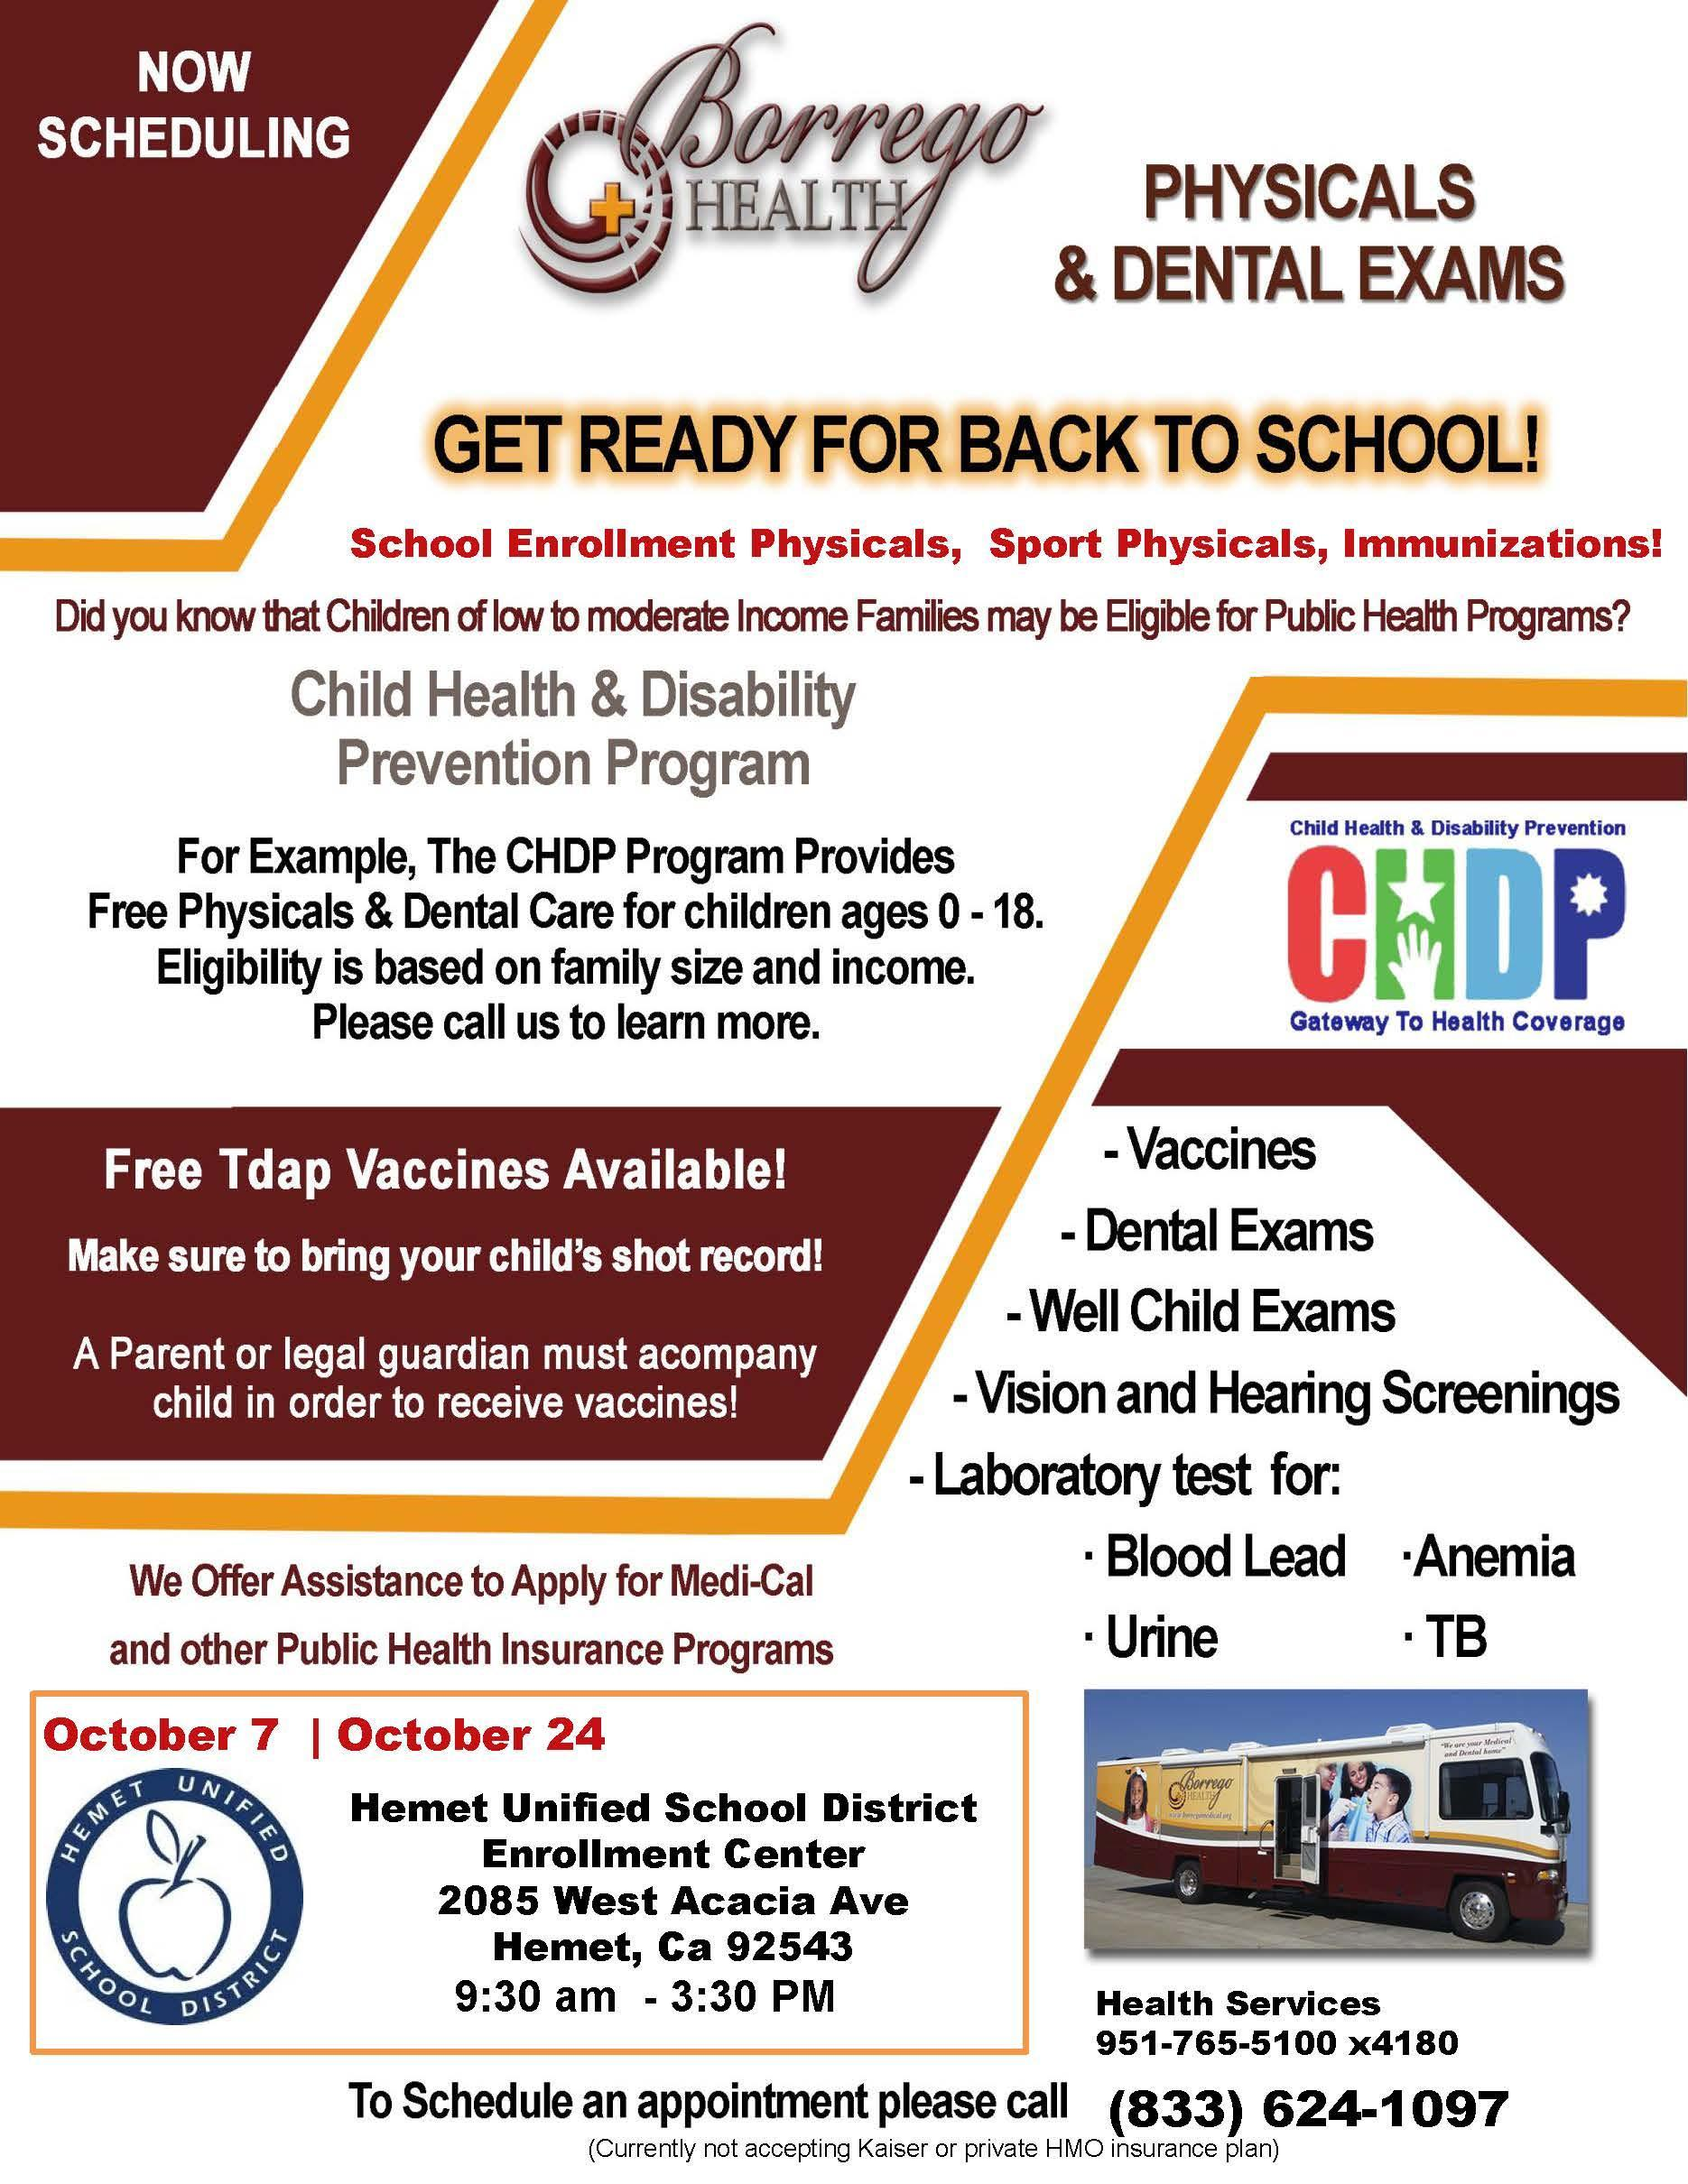 School Enrollment Physicals,  Sport Physicals, Immunizations! Sept 12th and October 24th 9:30am-3:30 pm for appointment call 951-765-5100 x4180